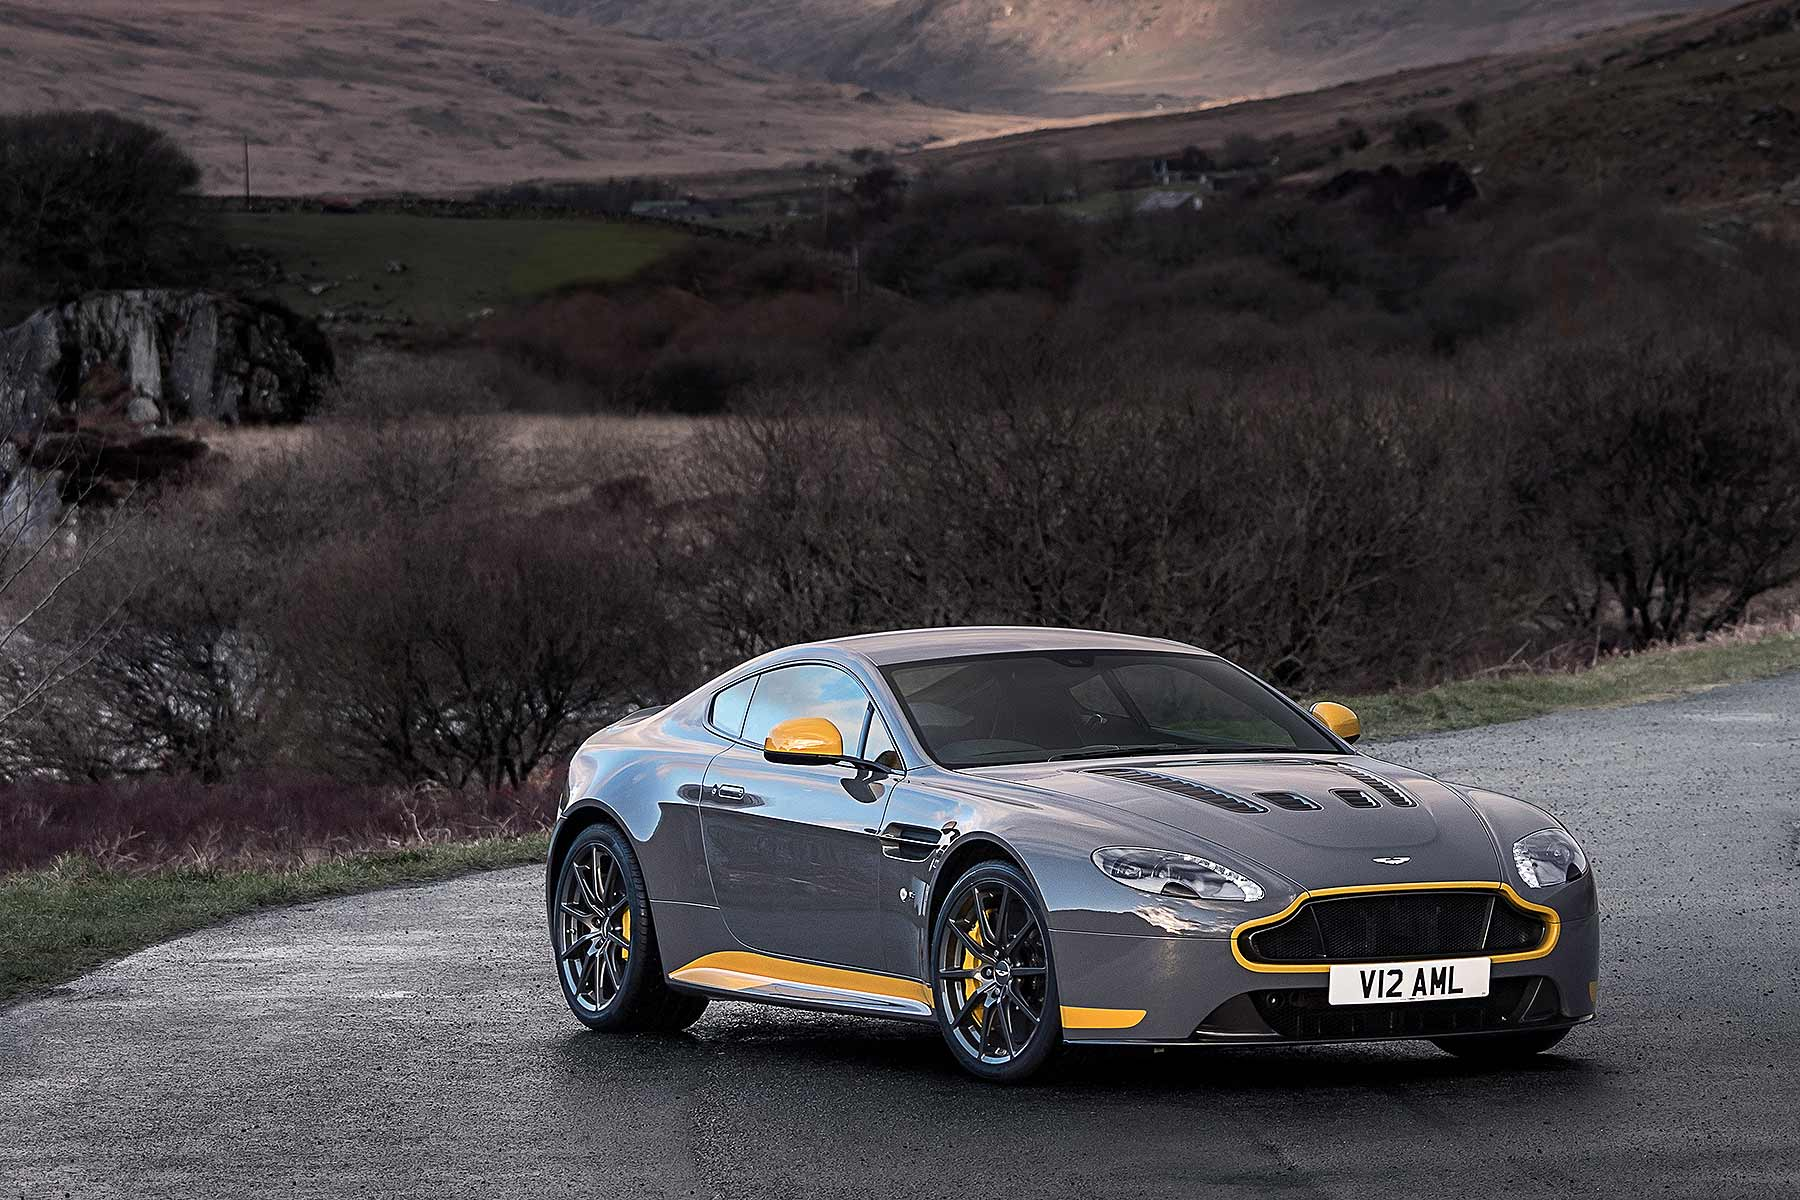 Aston Martin V Vantage S Manual A Change For The Better - Aston martin vantage s